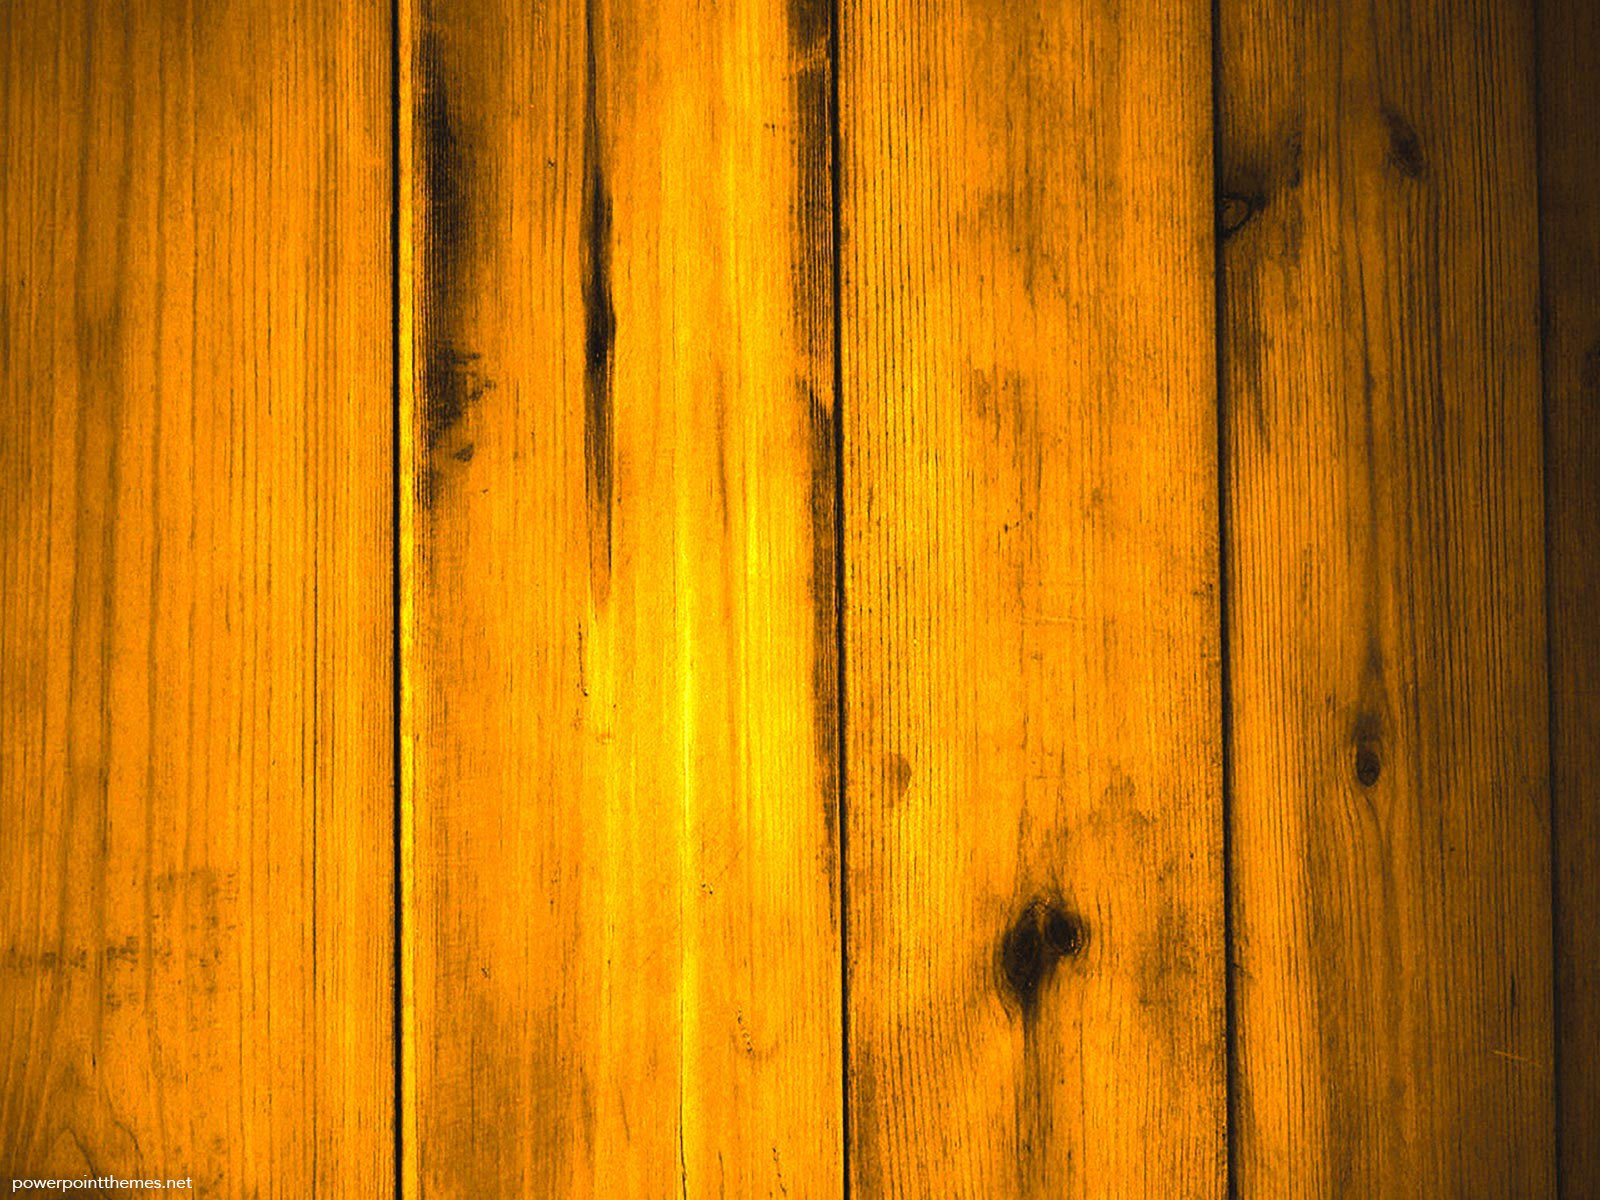 Wood Background for Powerpoint PowerPoint Themes 1600x1200